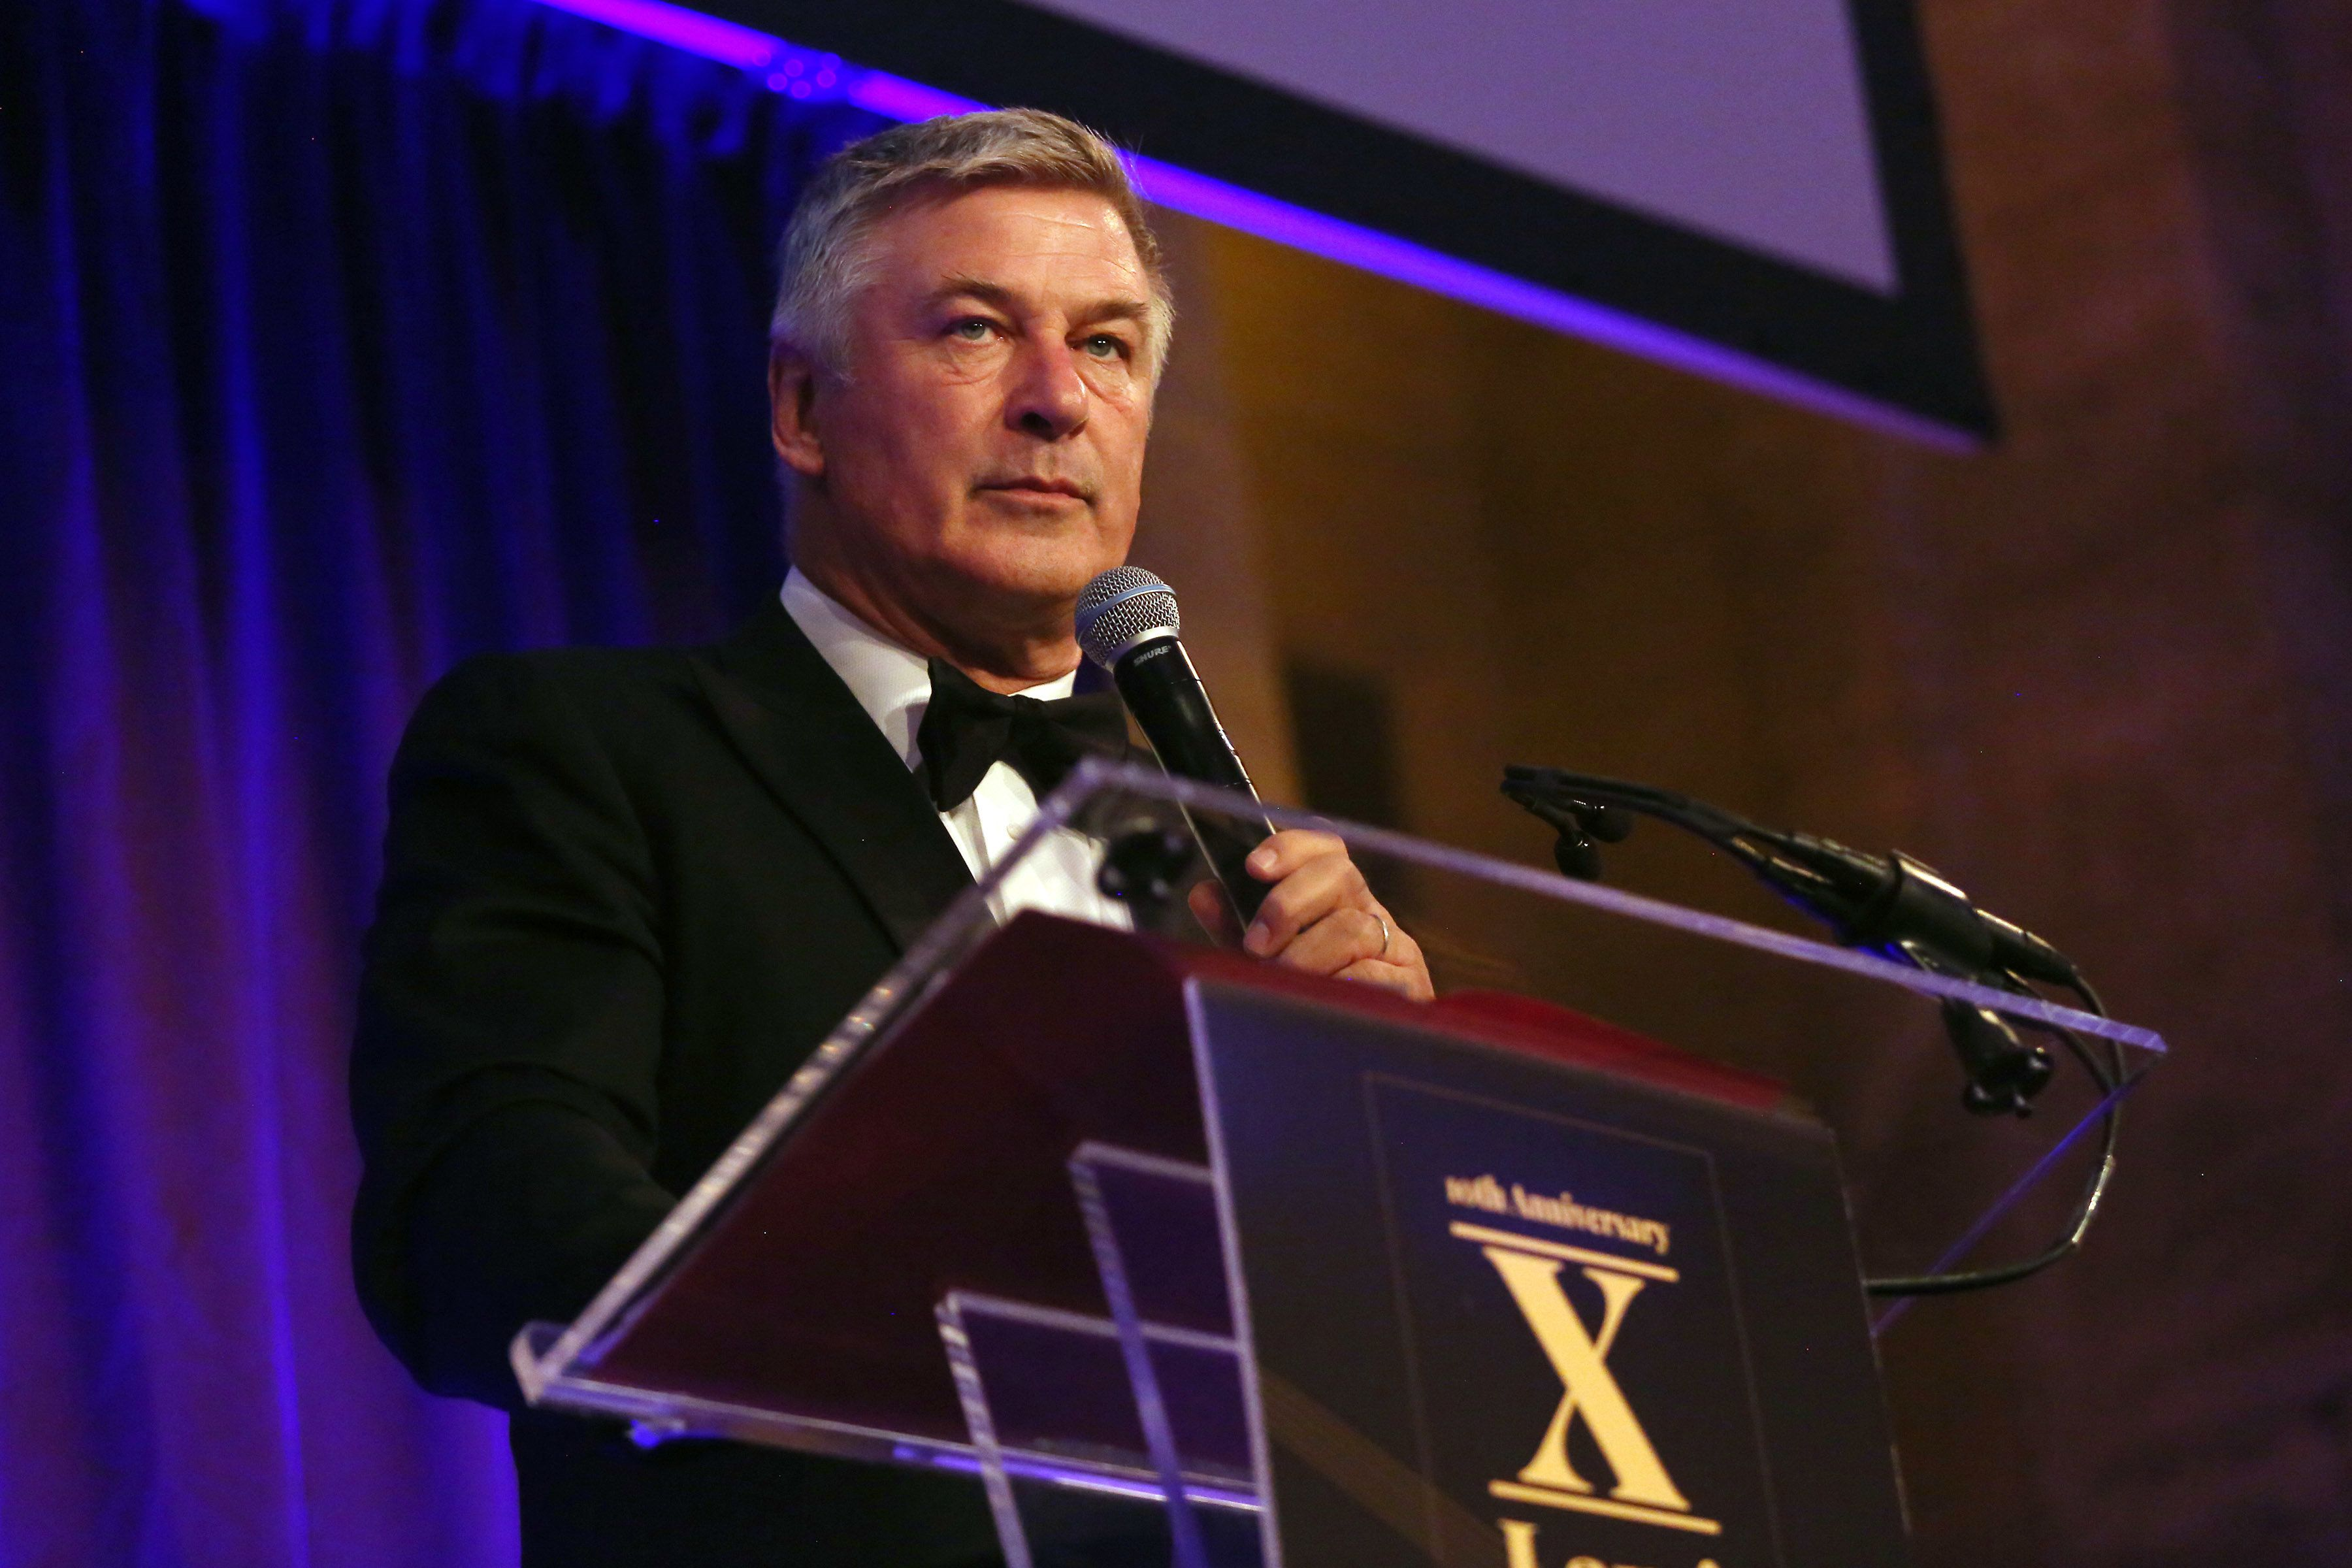 NEW YORK, NY - OCTOBER 10:  Alec Baldwin speaks at the LLIMF 10th Anniversary Gala Dinner at Cipriani 25 Broadway on October 10, 2018 in New York City.  (Photo by Krista Kennell/Patrick McMullan via Getty Images)